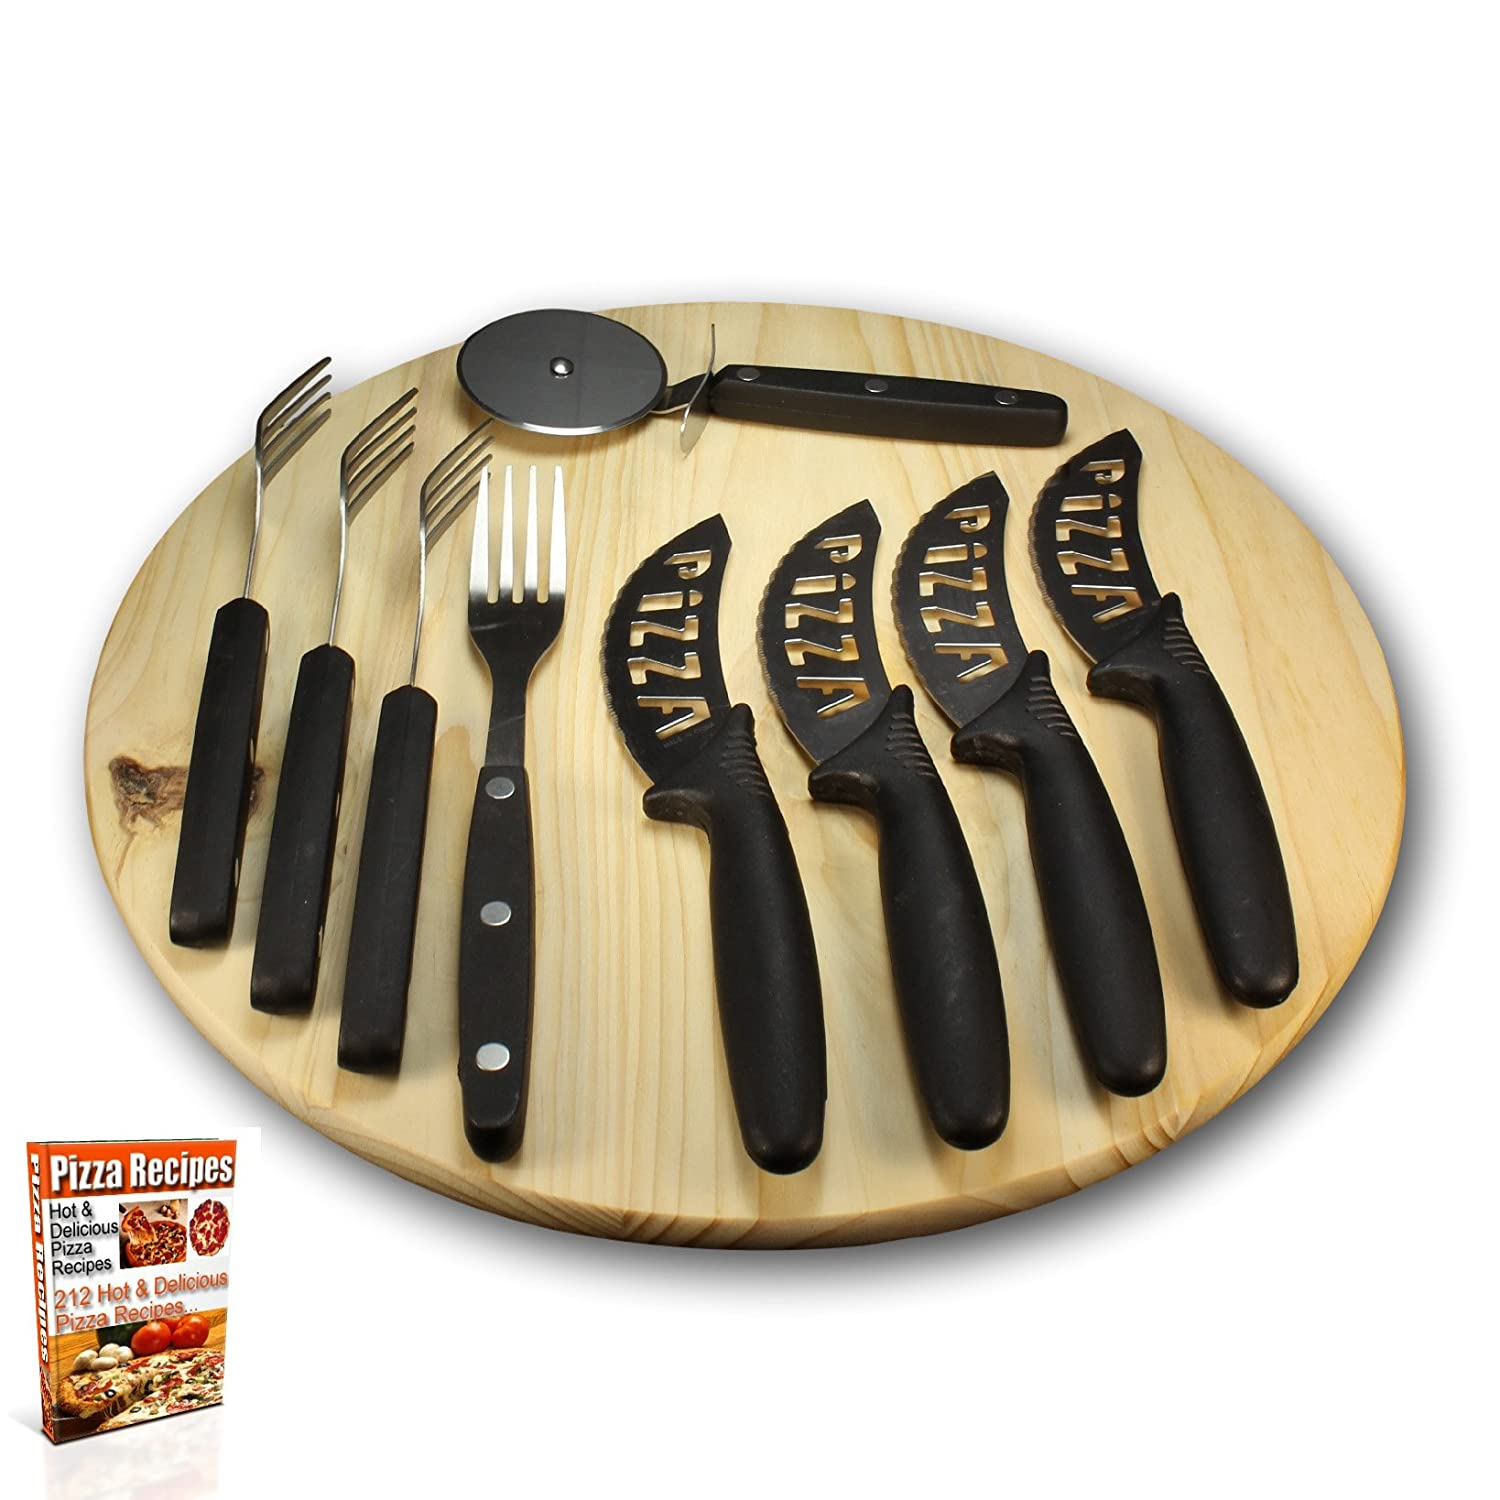 Pizza Serving Set – Wood Cutting Board, 9pc Utensils and 212 Recipe eBook – Gift Sets by bogo Brands